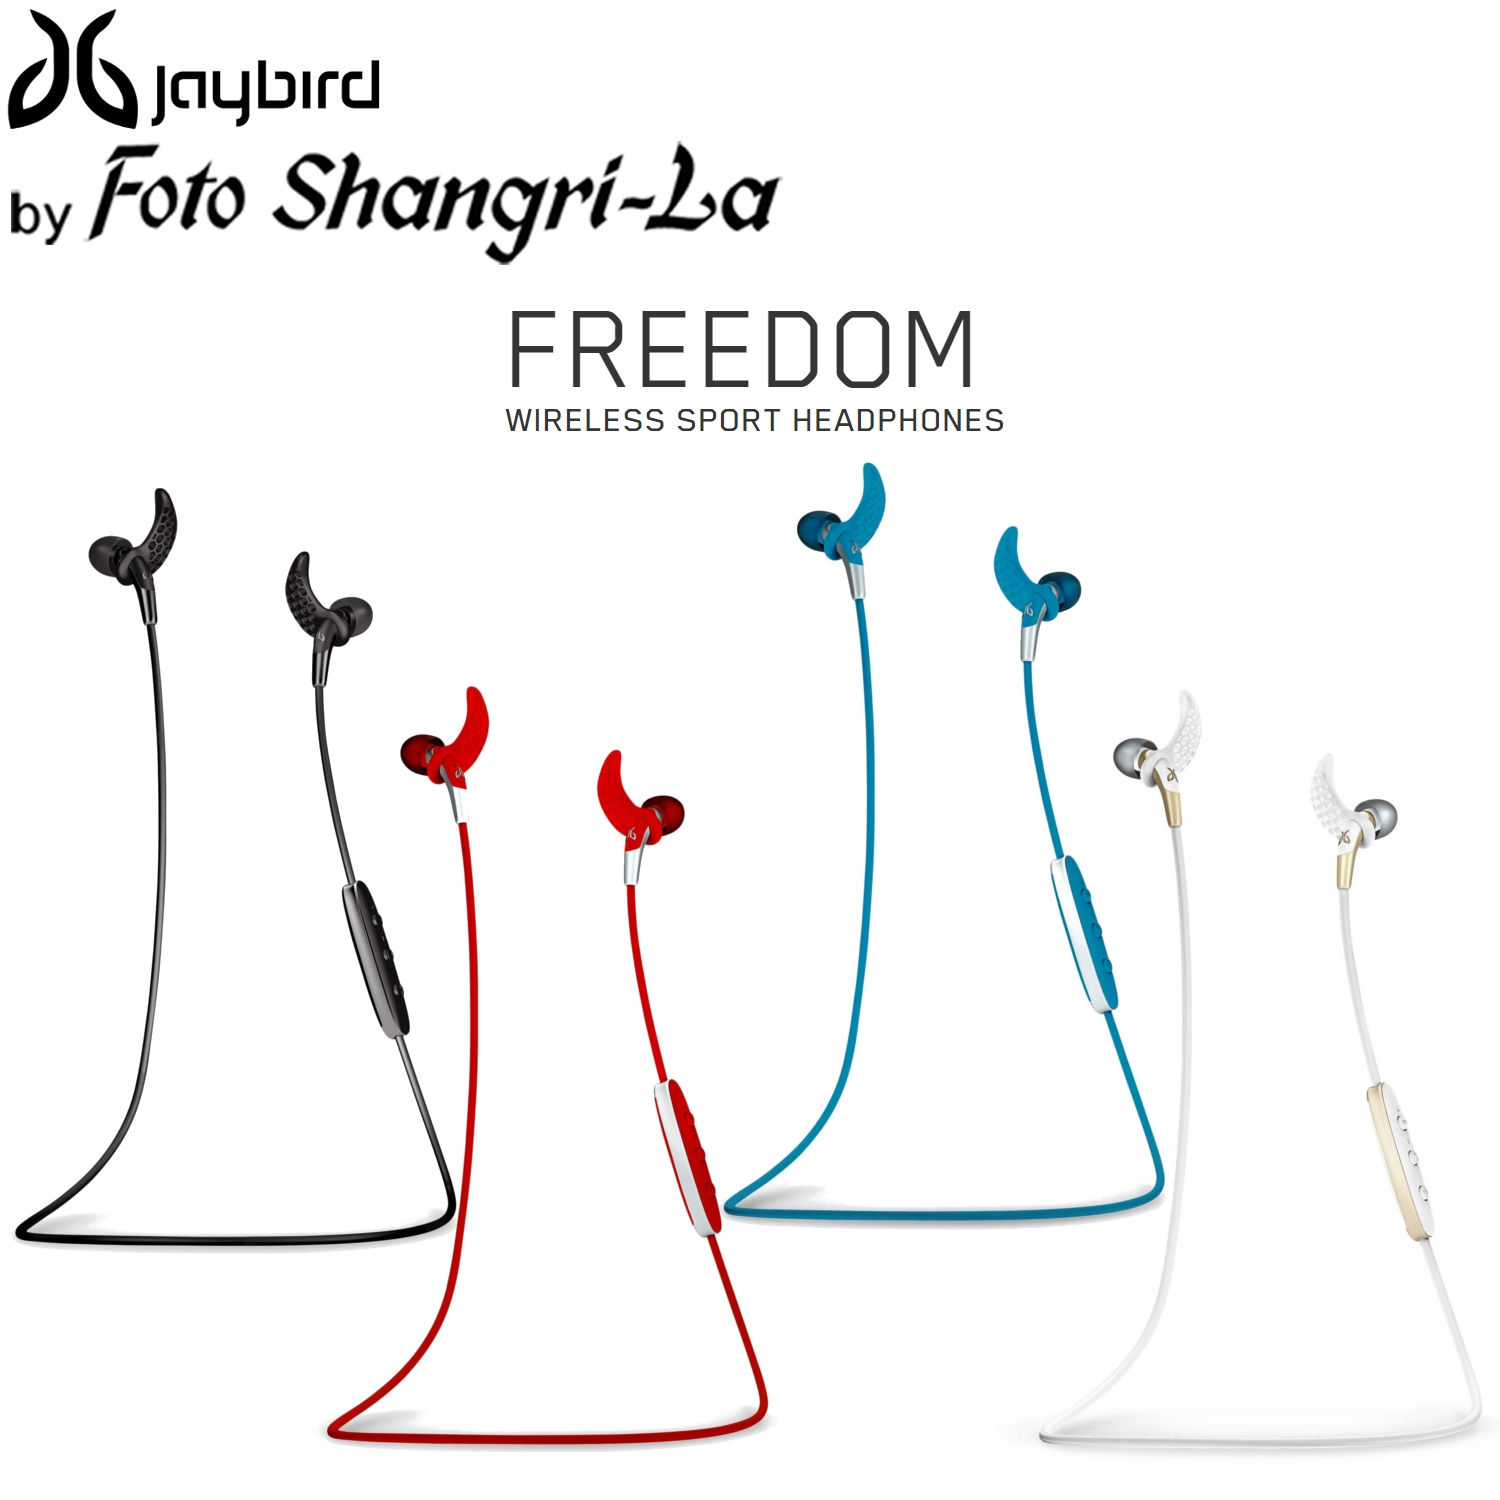 jaybird freedom wireless bluetooth in-ear sport earphone headphones [1 year  wa  ‹ ›